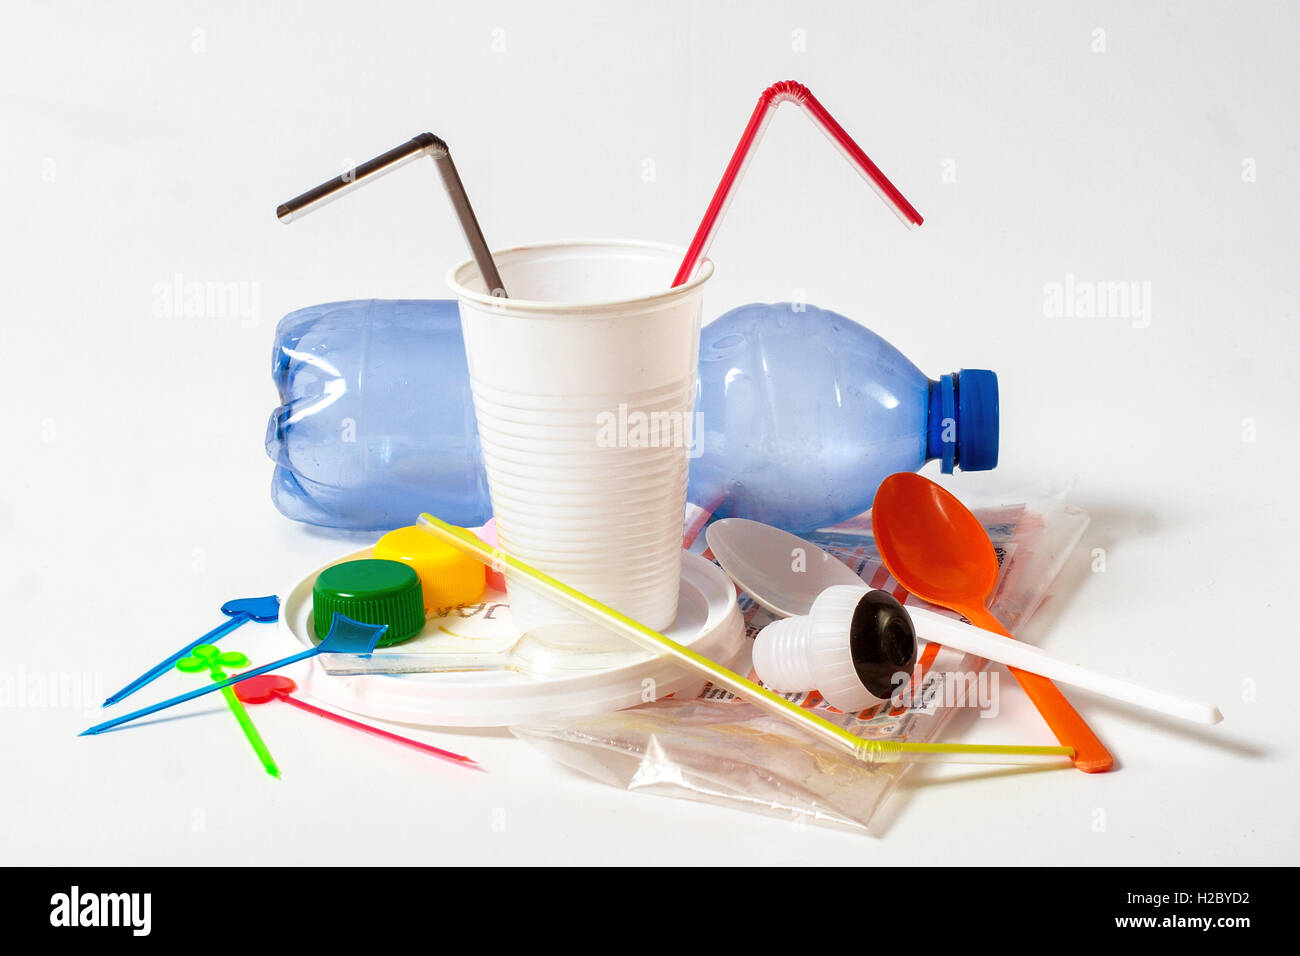 Assorted household plastic waste on white background - Stock Image